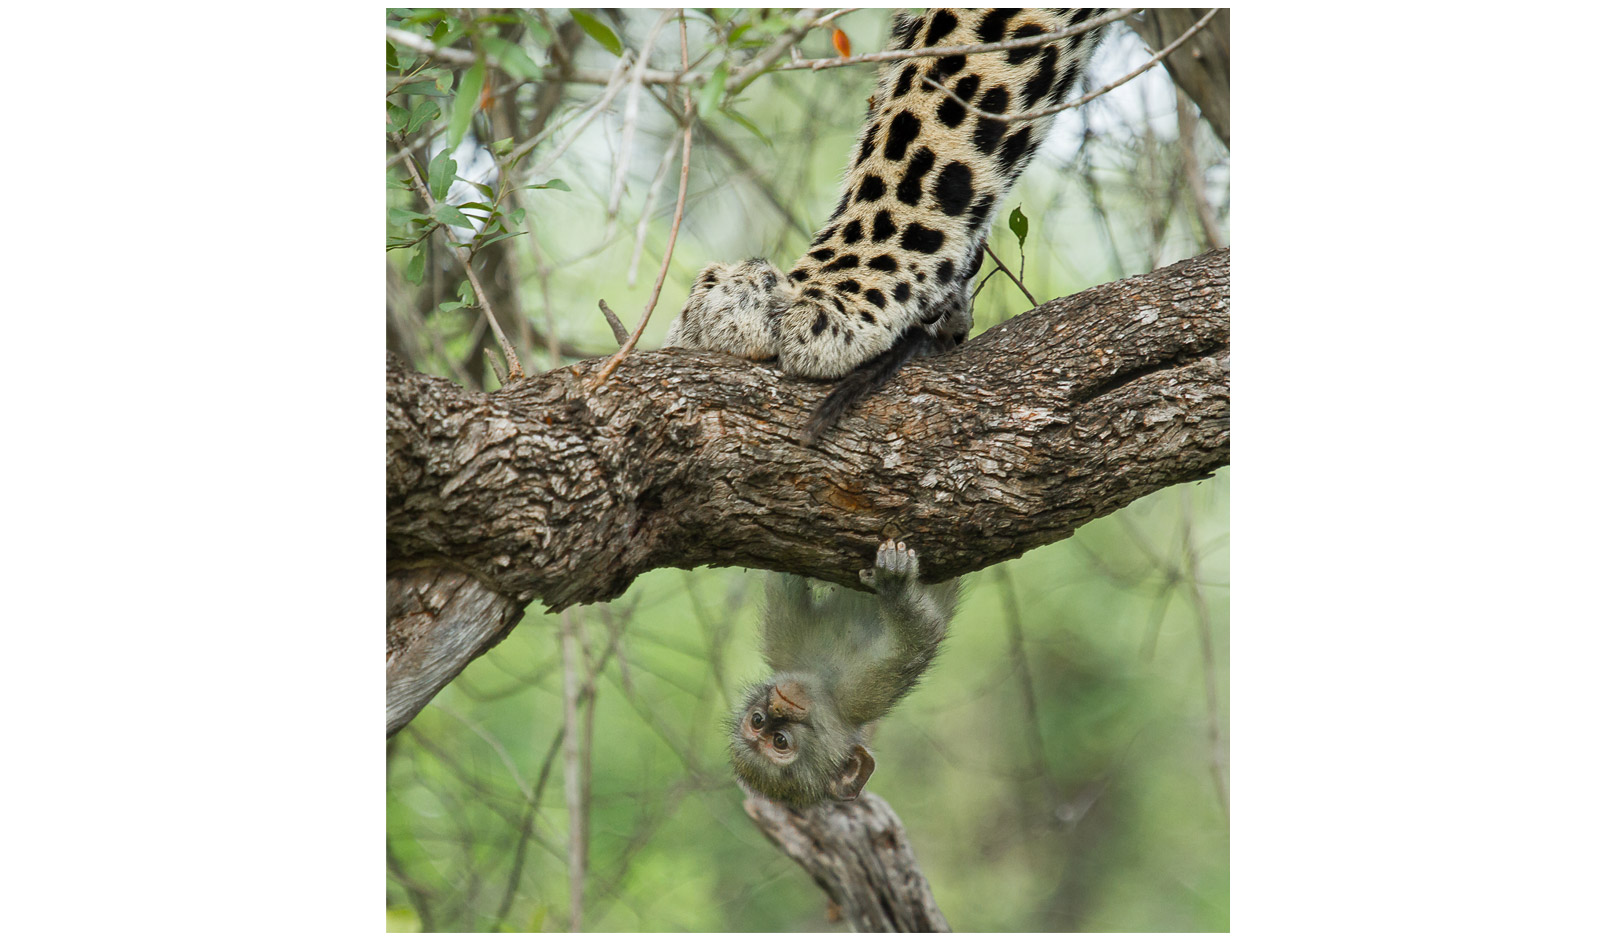 Chris-Renshaw-KrugerNP-monkey-and-leopard